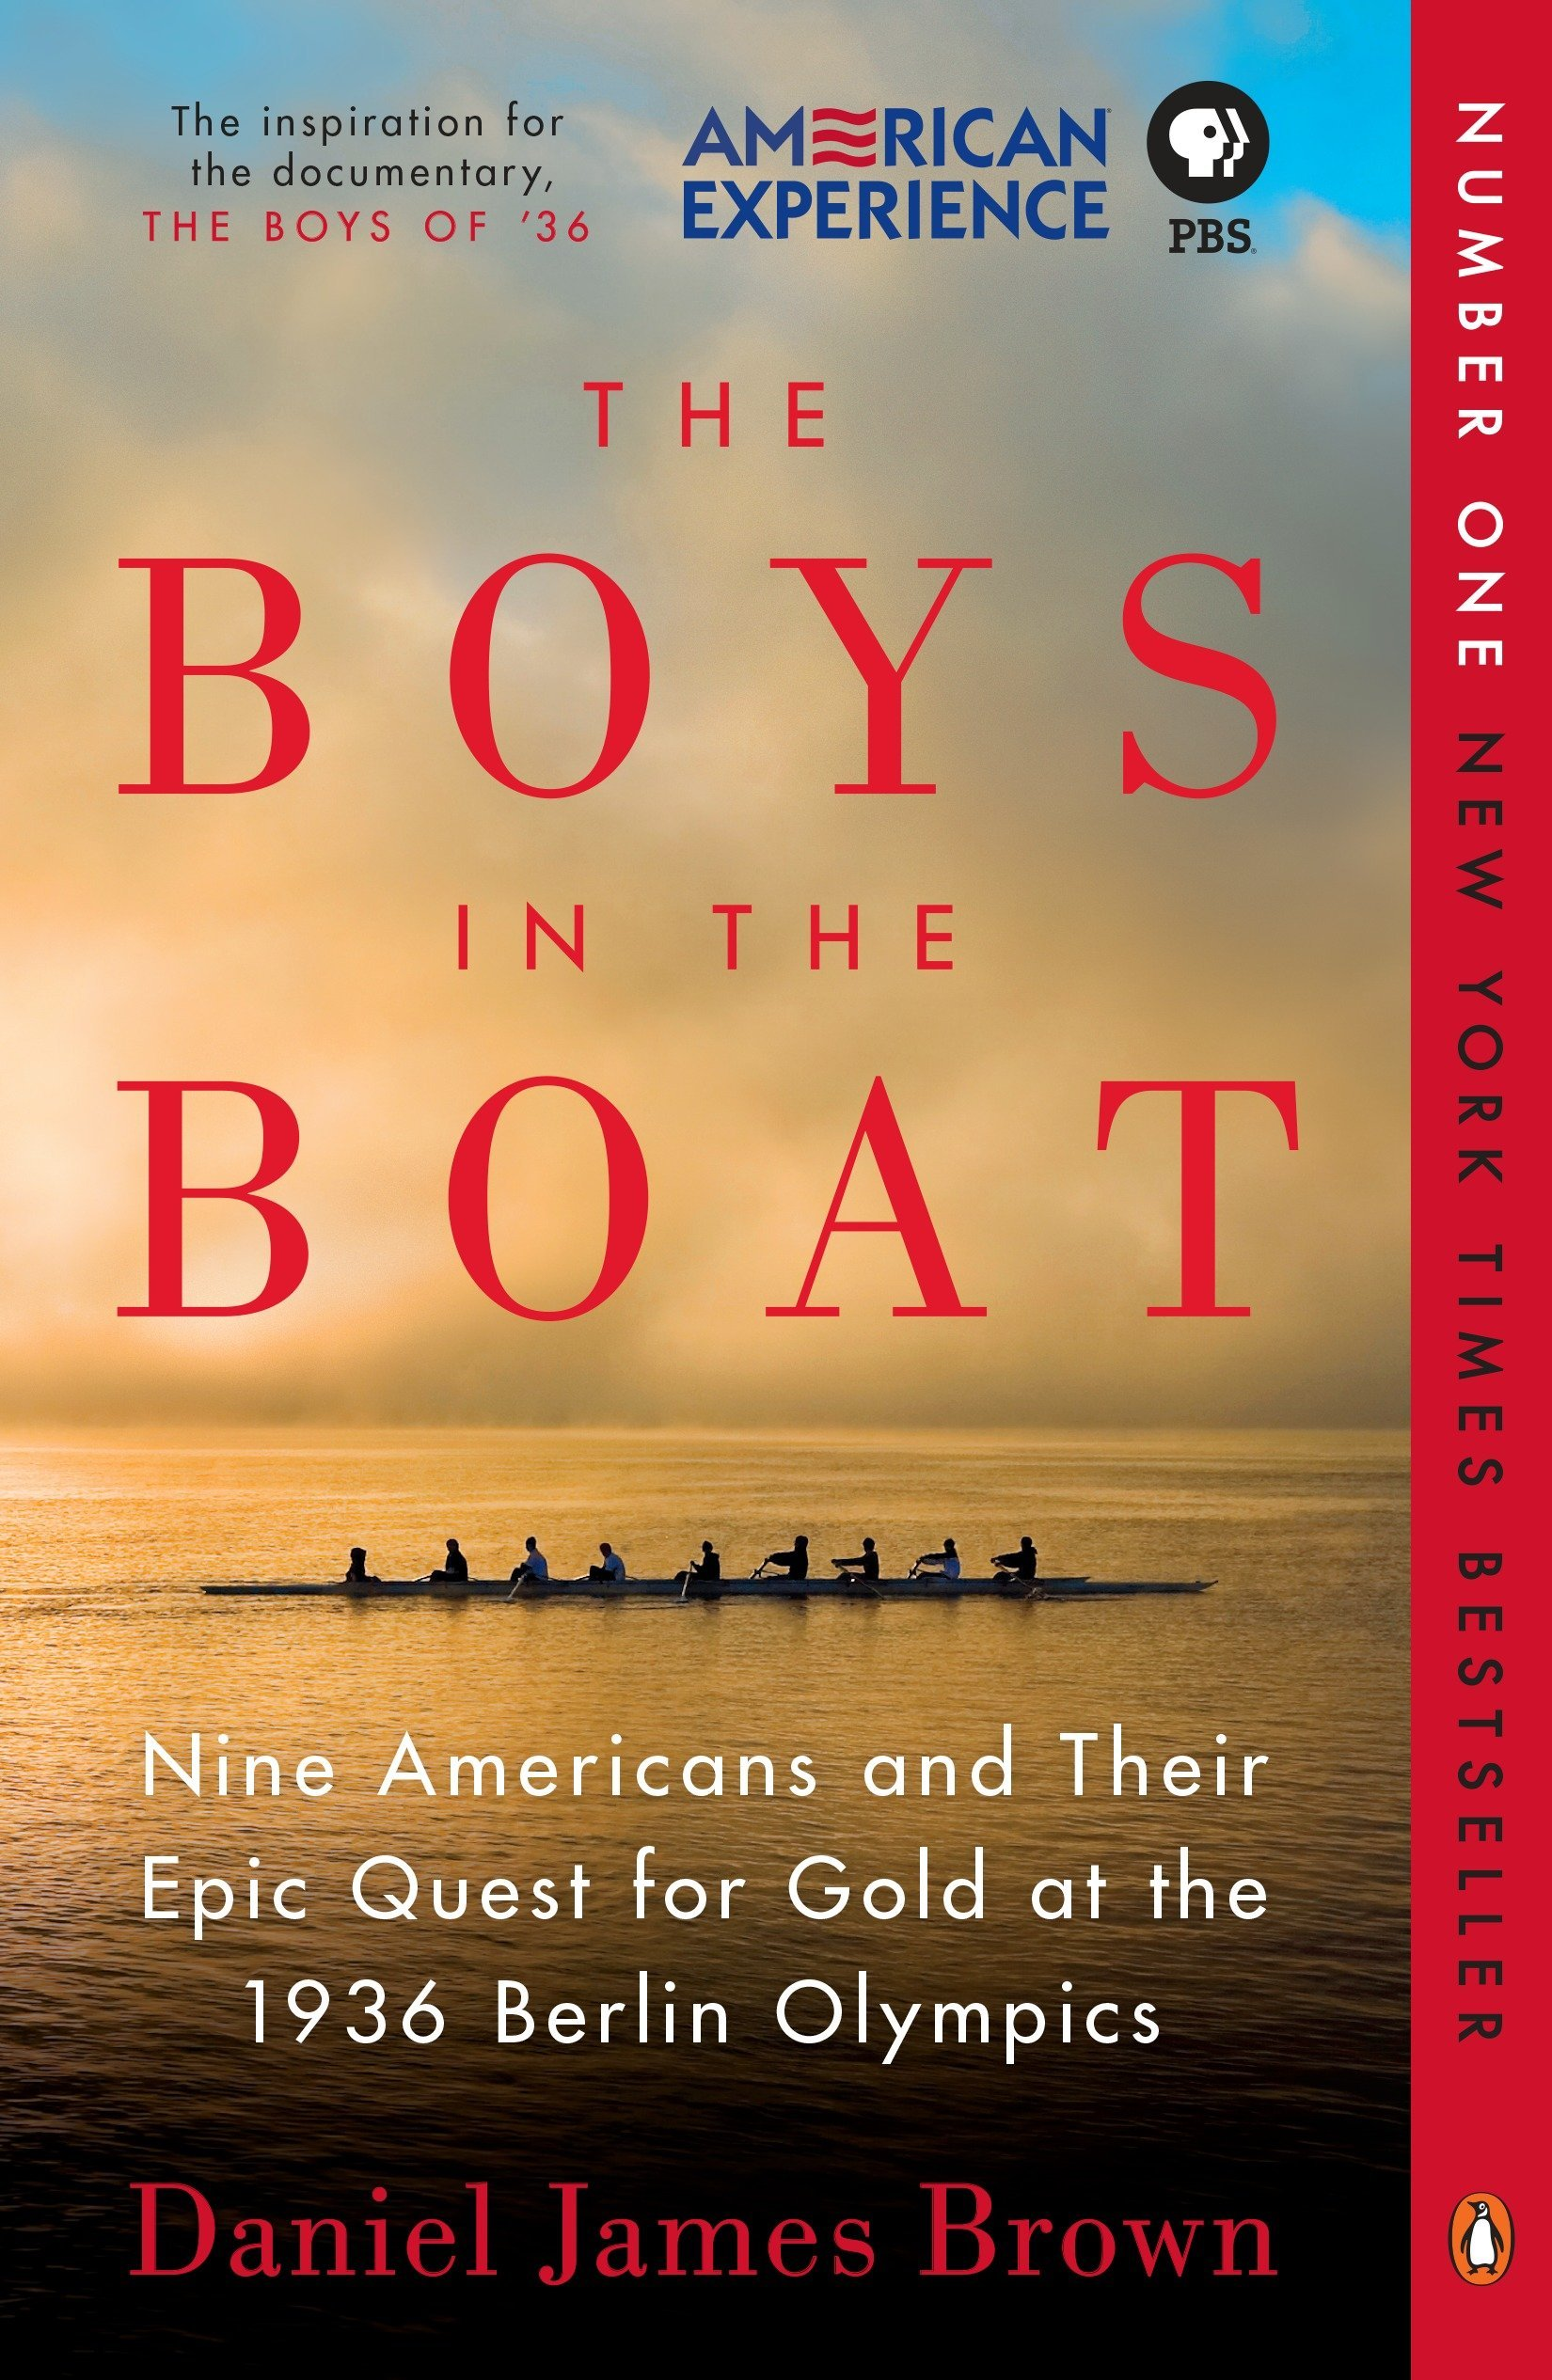 boys in the boat - https://www.amazon.com/Boys-Boat-Americans-Berlin-Olympics/dp/0143125478/ref=sr_1_1?crid=4645XKAQWQVV&keywords=boys+in+the+boat+book&qid=1553977315&s=gateway&sprefix=boys+in+the+%2Caps%2C162&sr=8-1